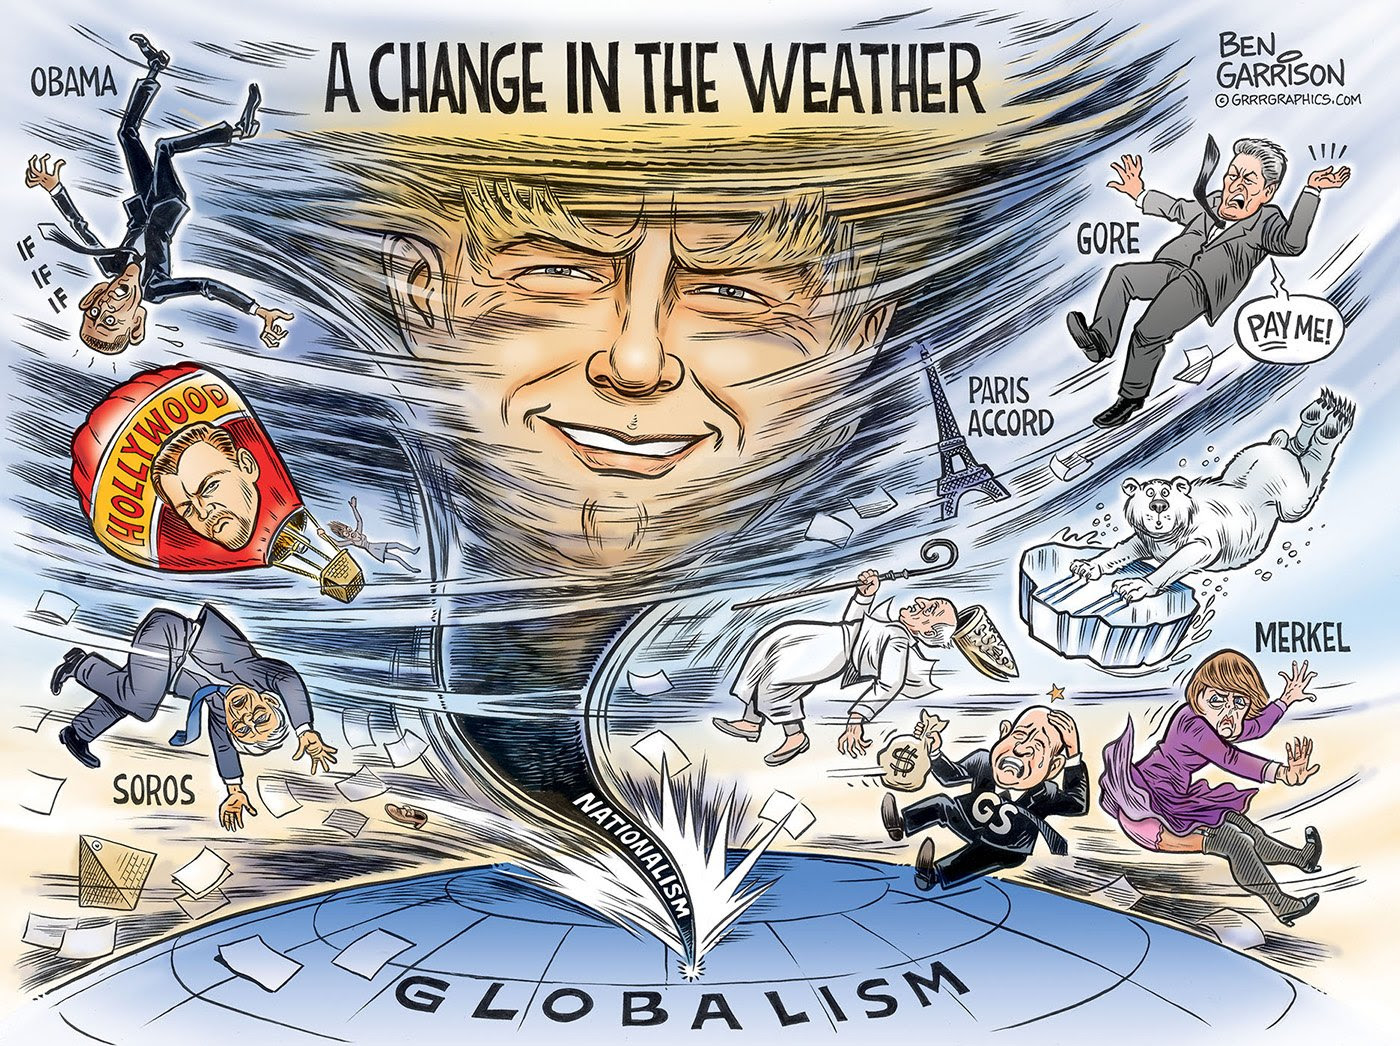 Ben Garrison: A Change In The Weather : The_Donald